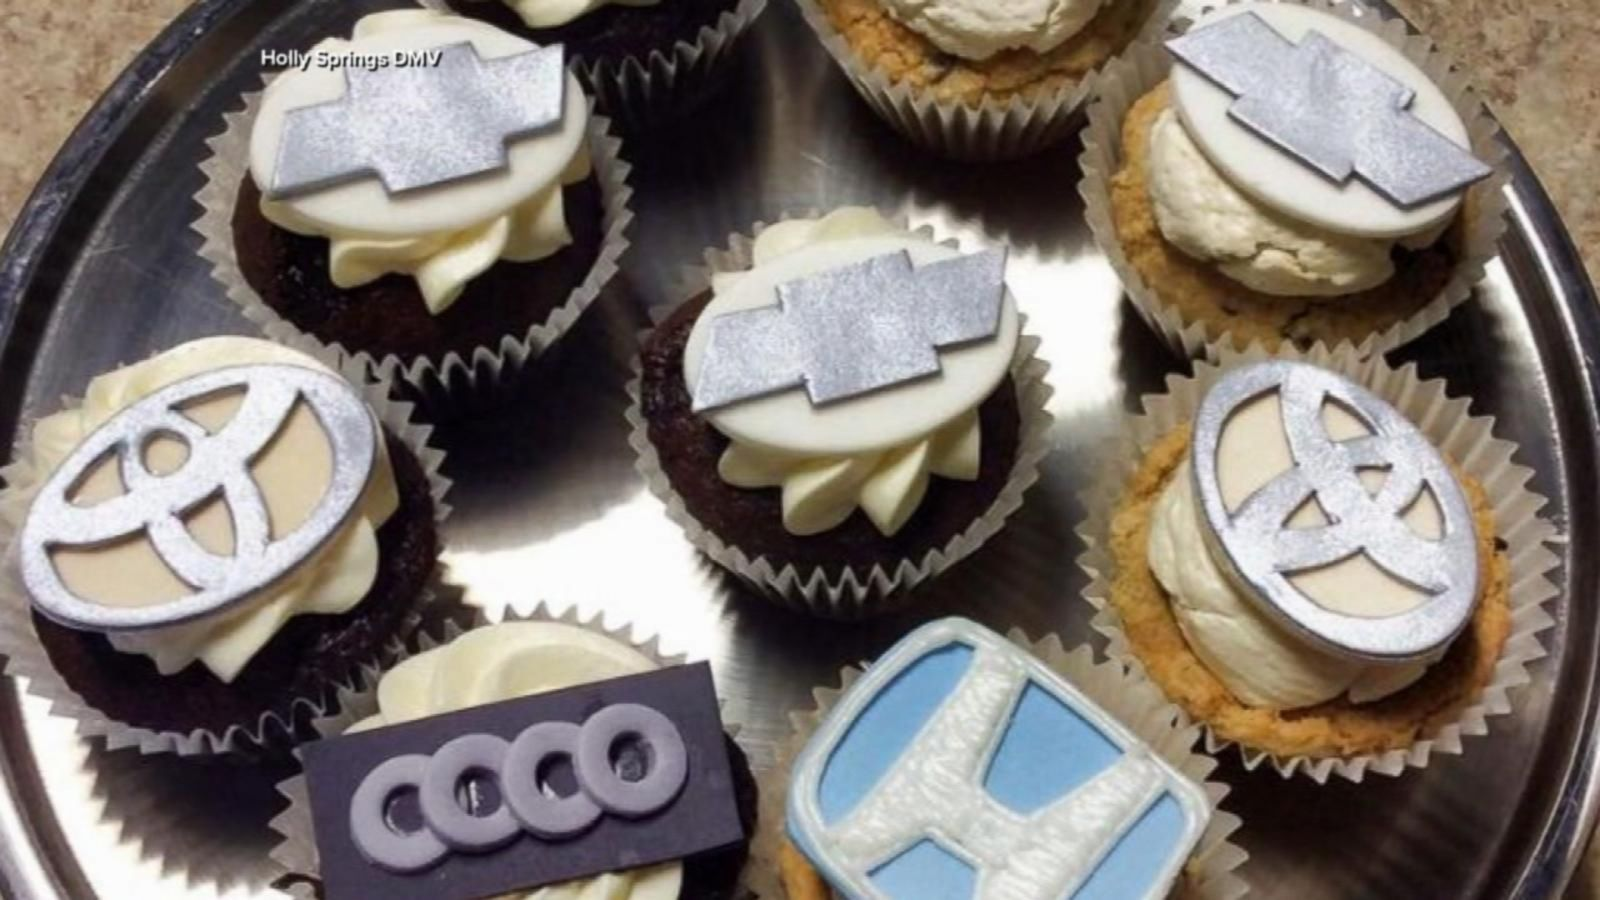 VIDEO: This Magical DMV Serves Cupcakes and Is Winning at Customer Service